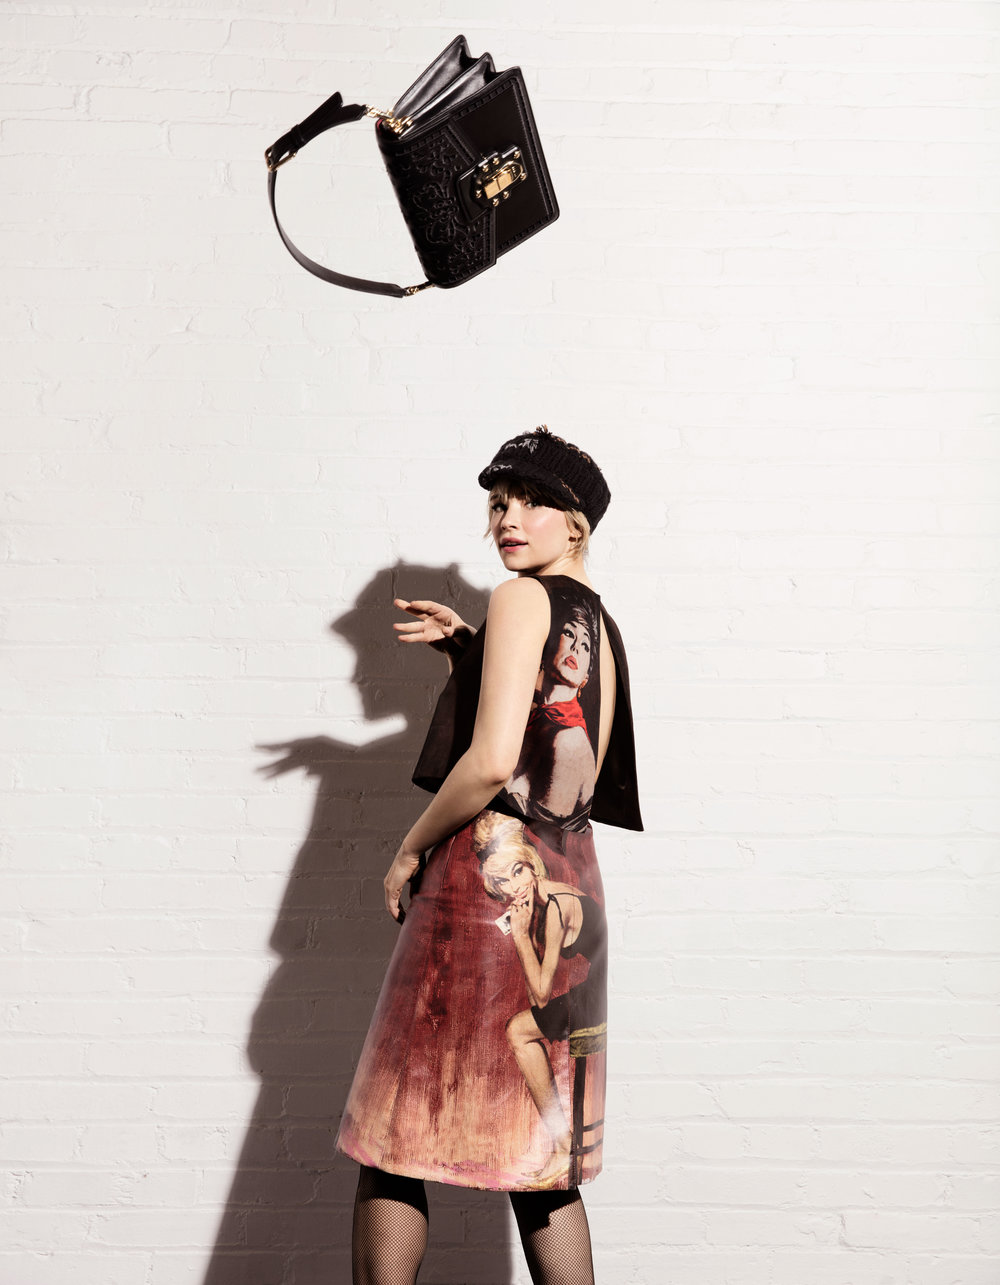 PRADA top, skirt, and hat, WOLFORD tights and DOLCE & GABBANA bag.